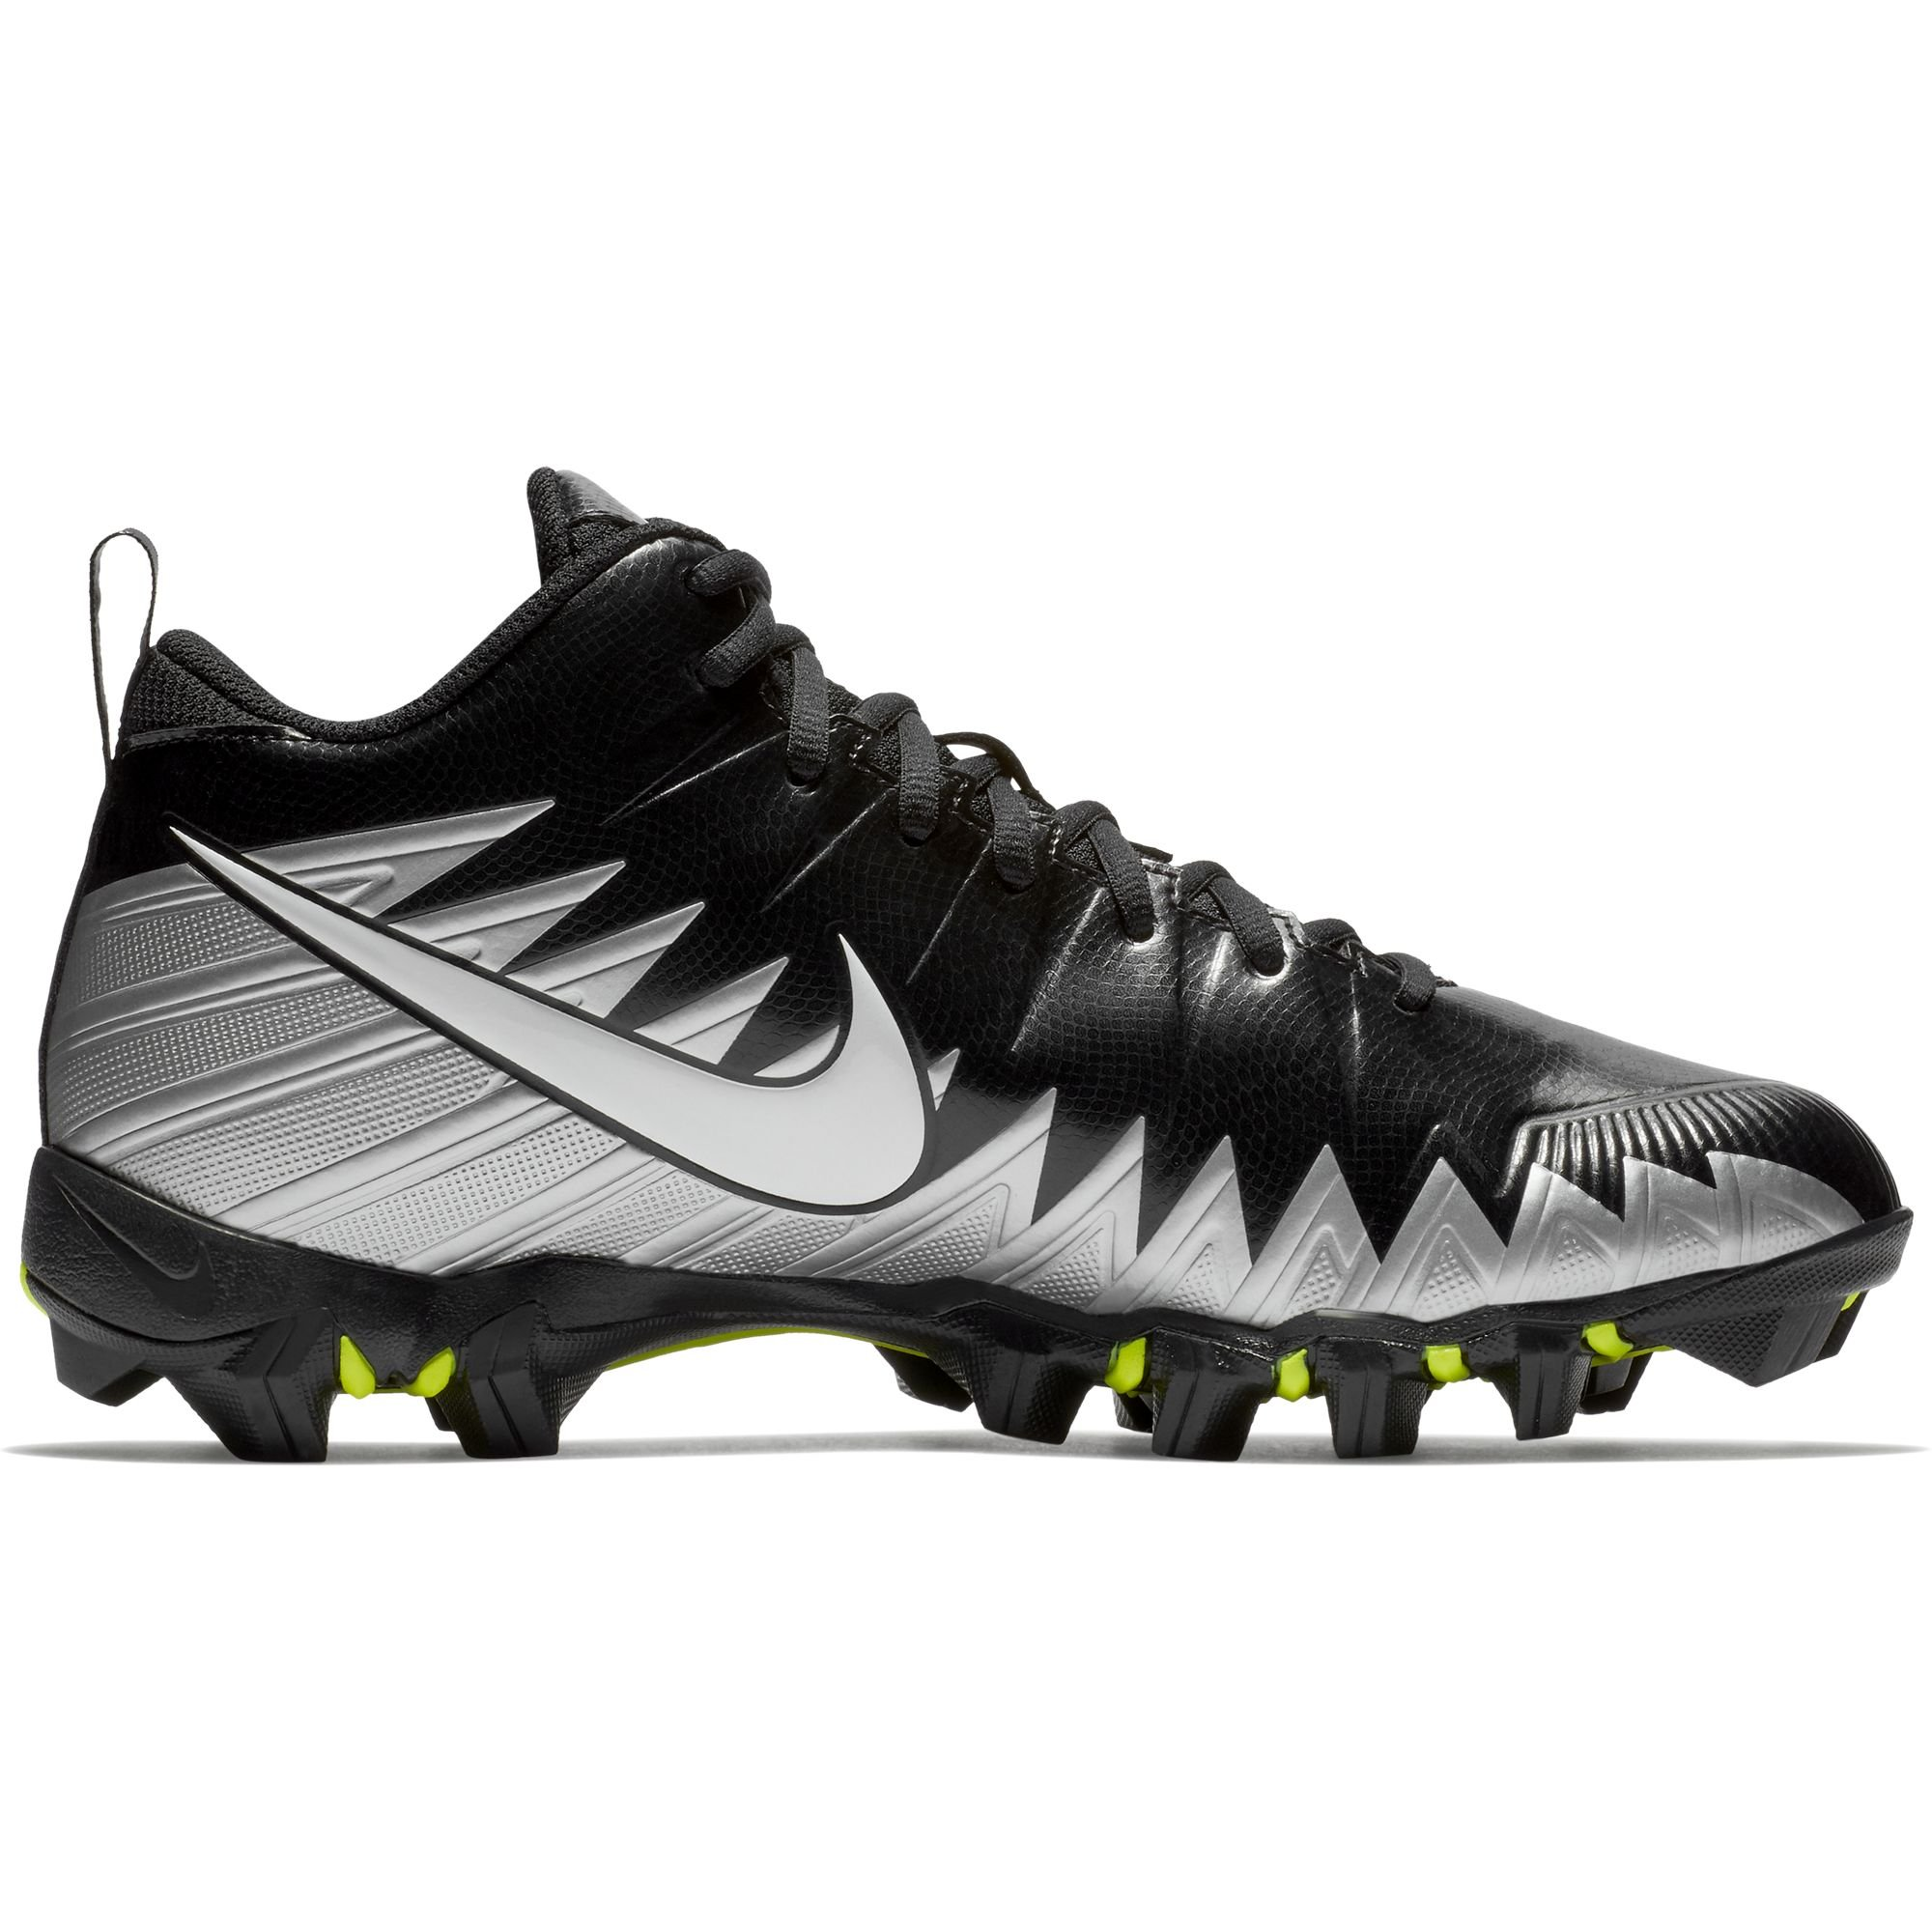 NIKE Men's Alpha Menace Shark Wide Football Cleat Black/Metallic Silver Size 9 M US by NIKE